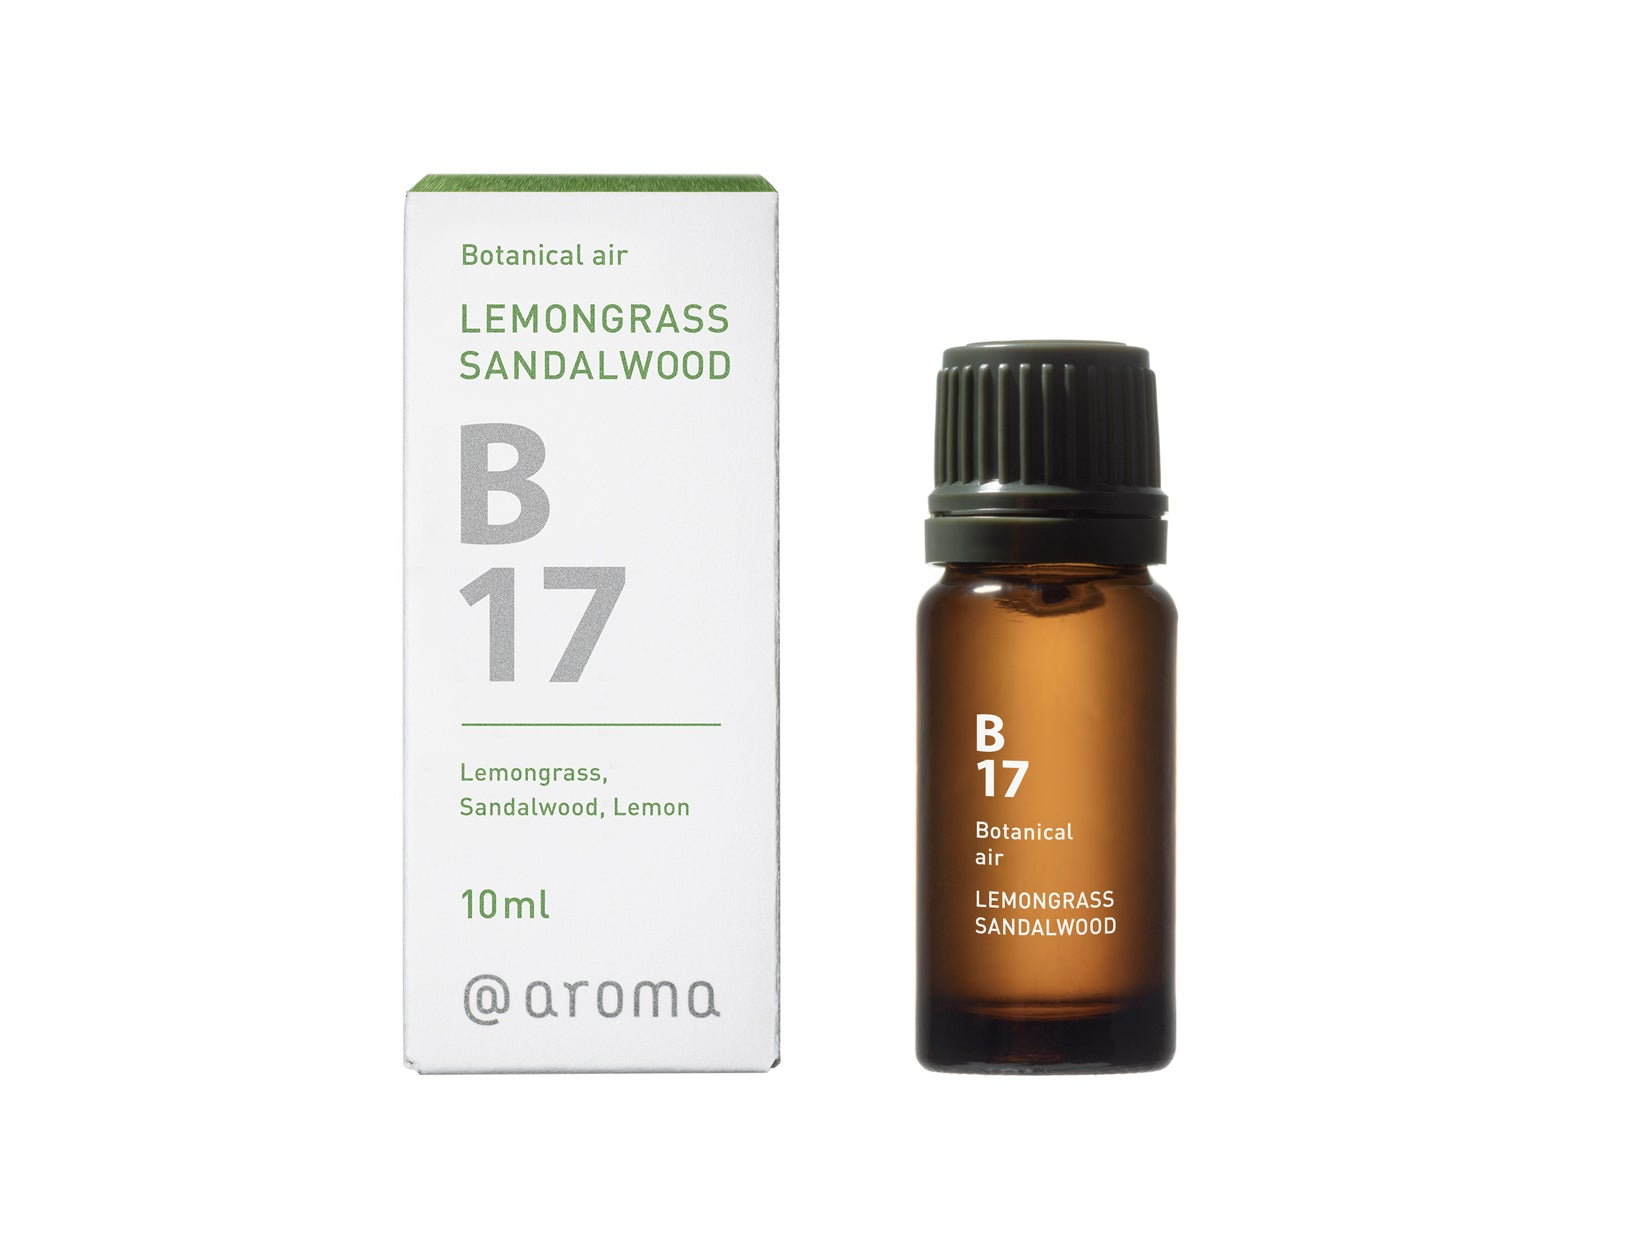 B 17 _ Lemongrass Sandalwood